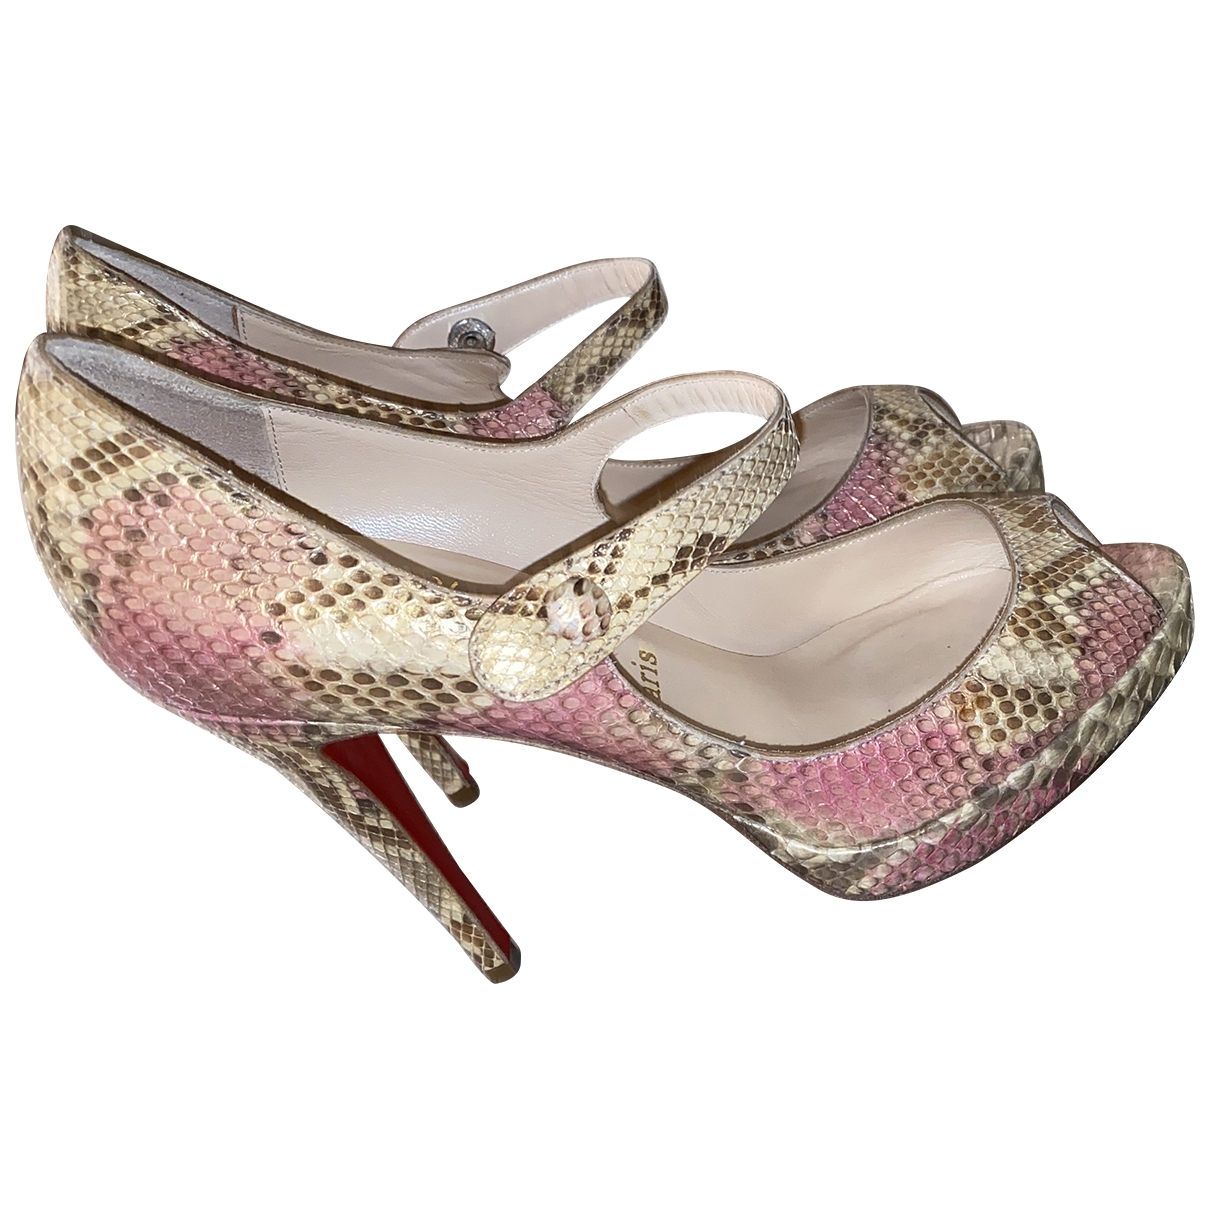 Tacones Very Prive de Piton Christian Louboutin